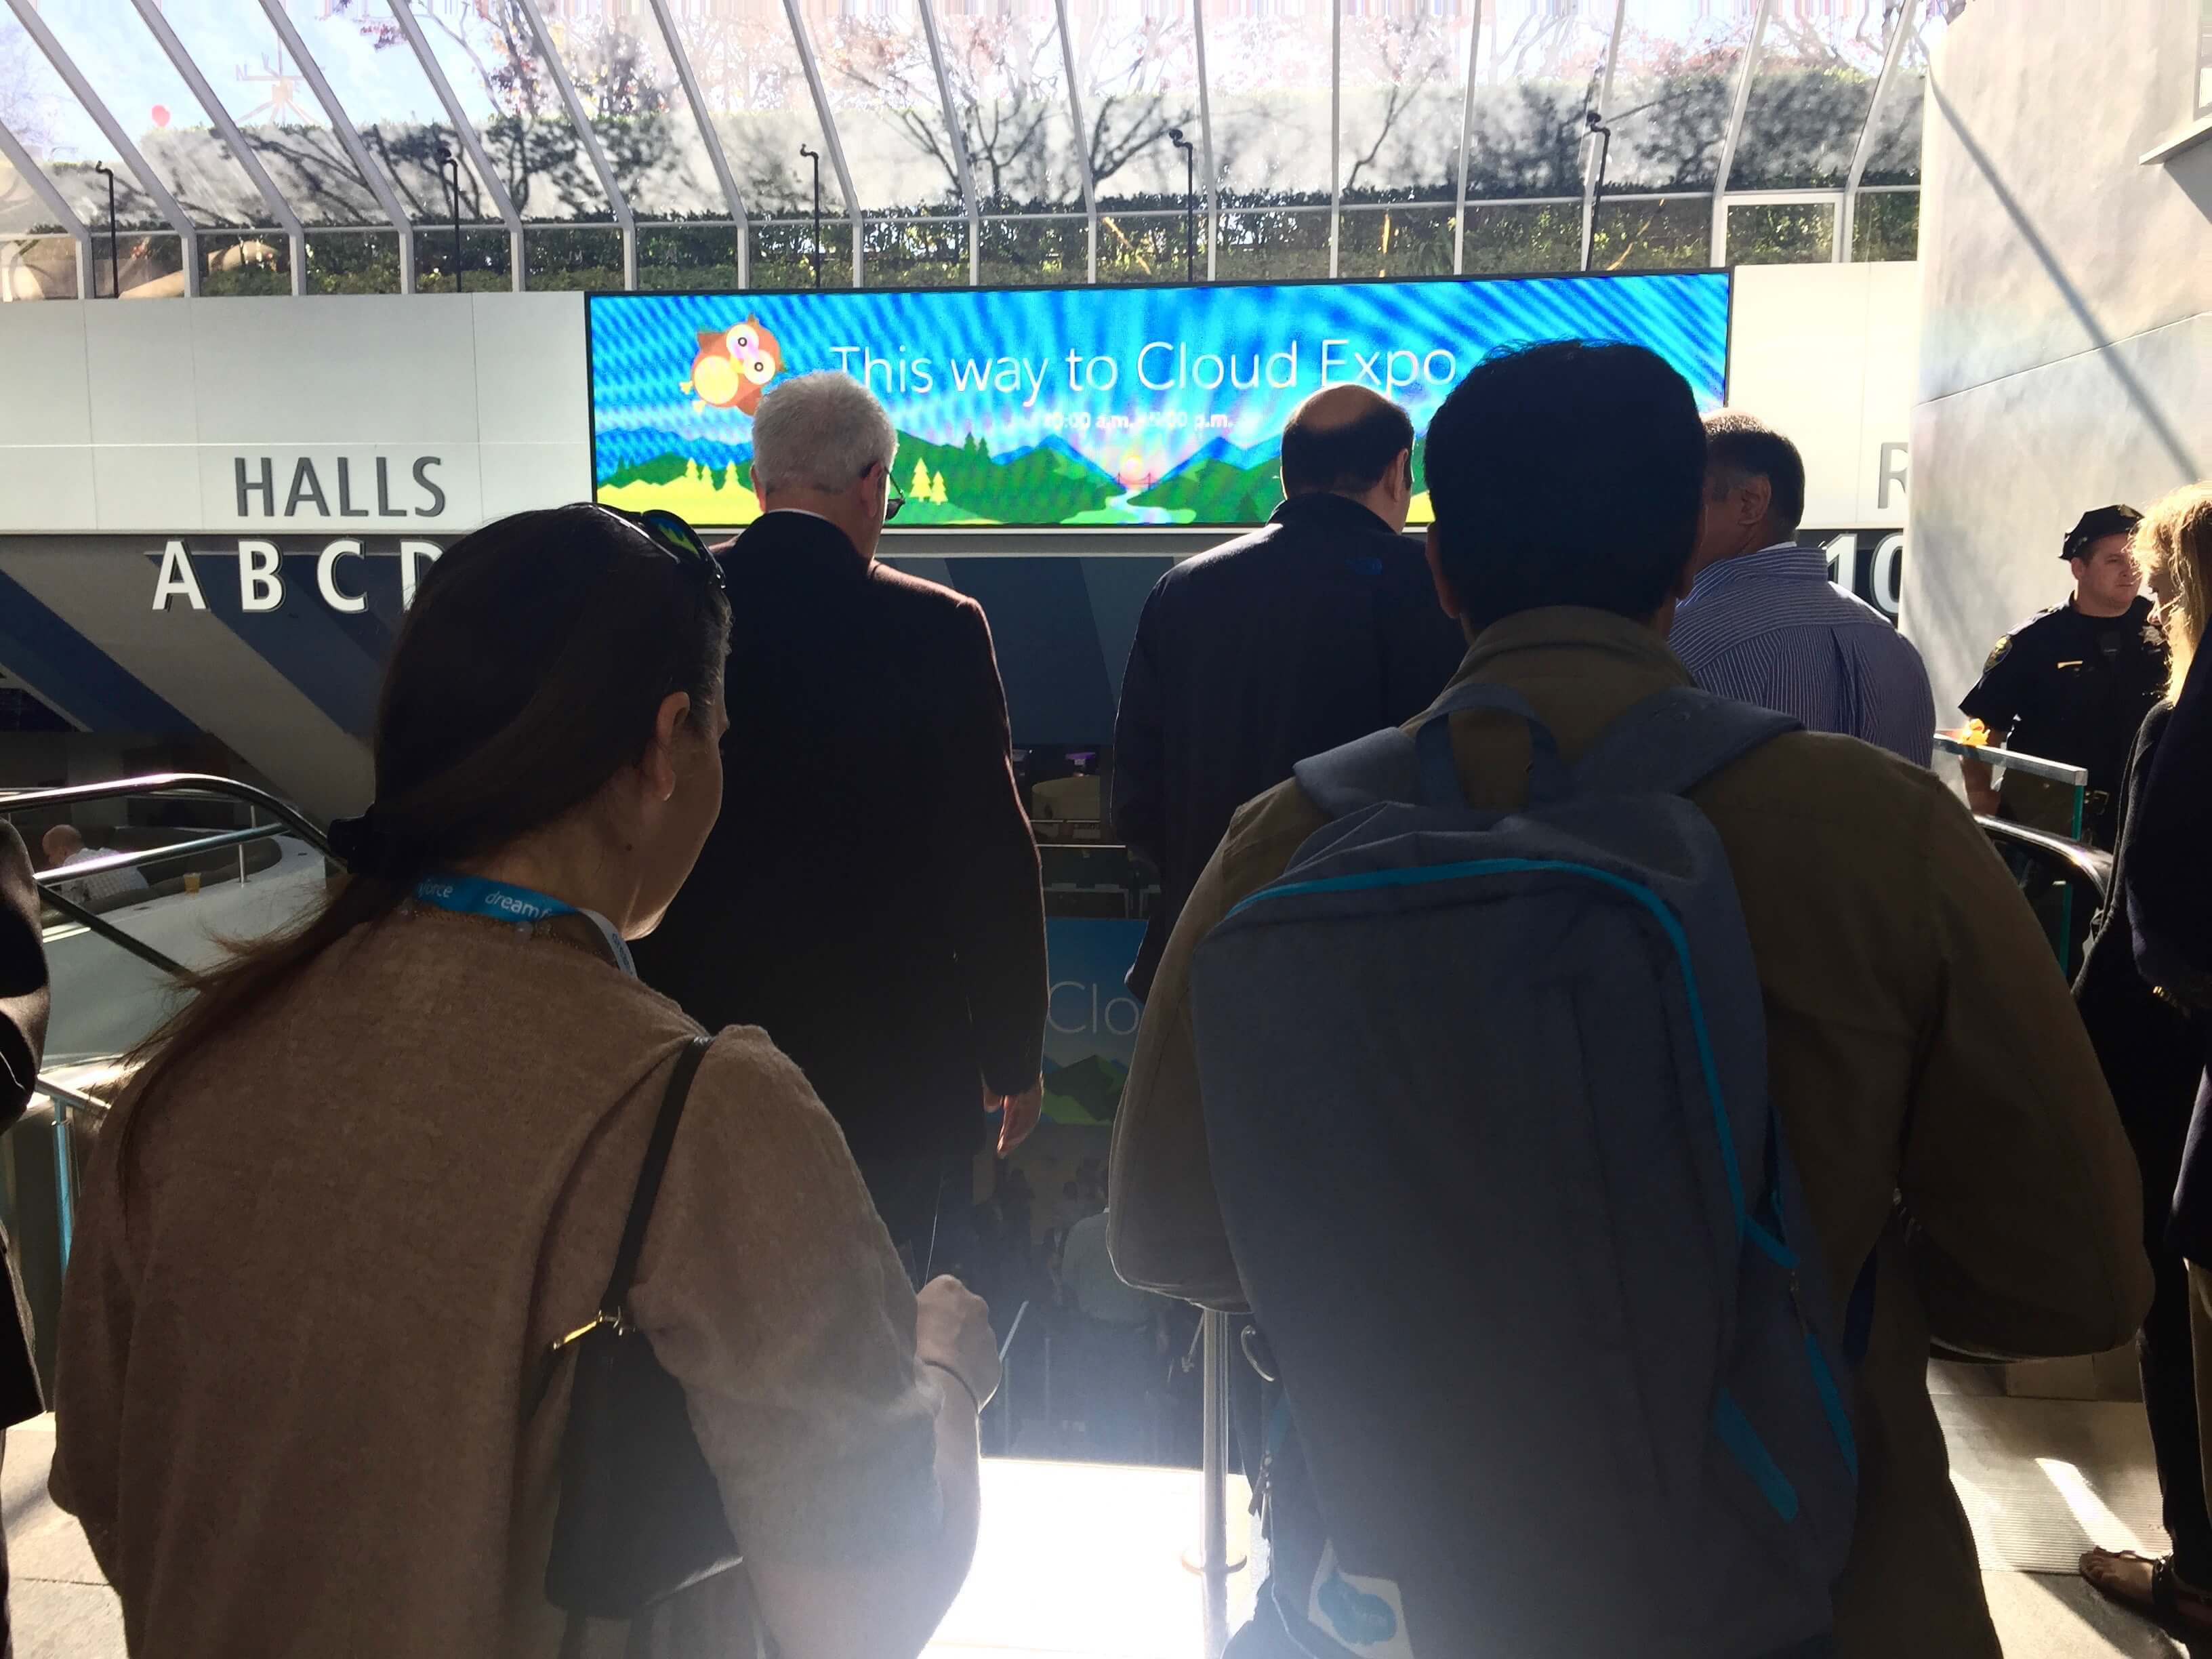 expo at dreamforce